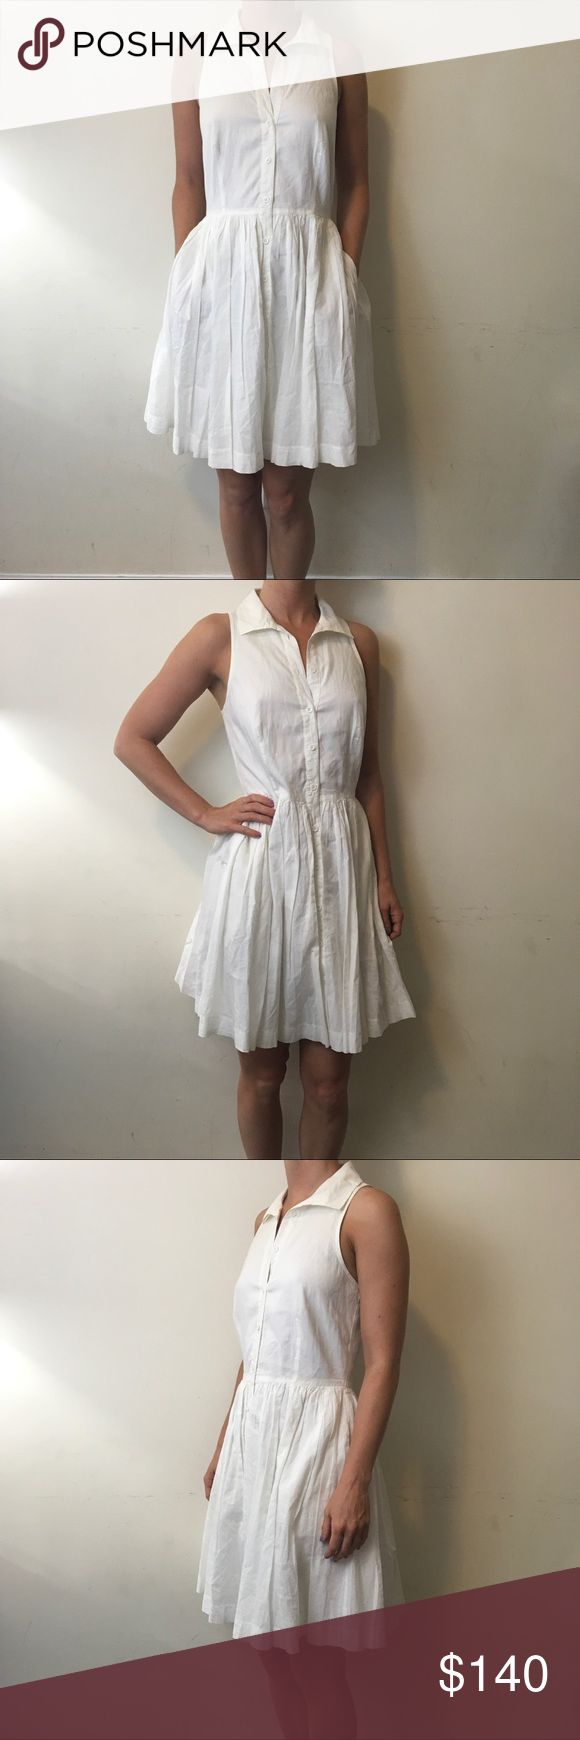 Reiss White Sleeveless Collared Button Down Dress Reiss Dress with a white body and is Sleeveless with a collar and Button Down center. Lined and worn lightly a few times. Size 2. True to size. Has some light marks along the neck - easy fix with a dry clean or hand wash :) Reiss Dresses